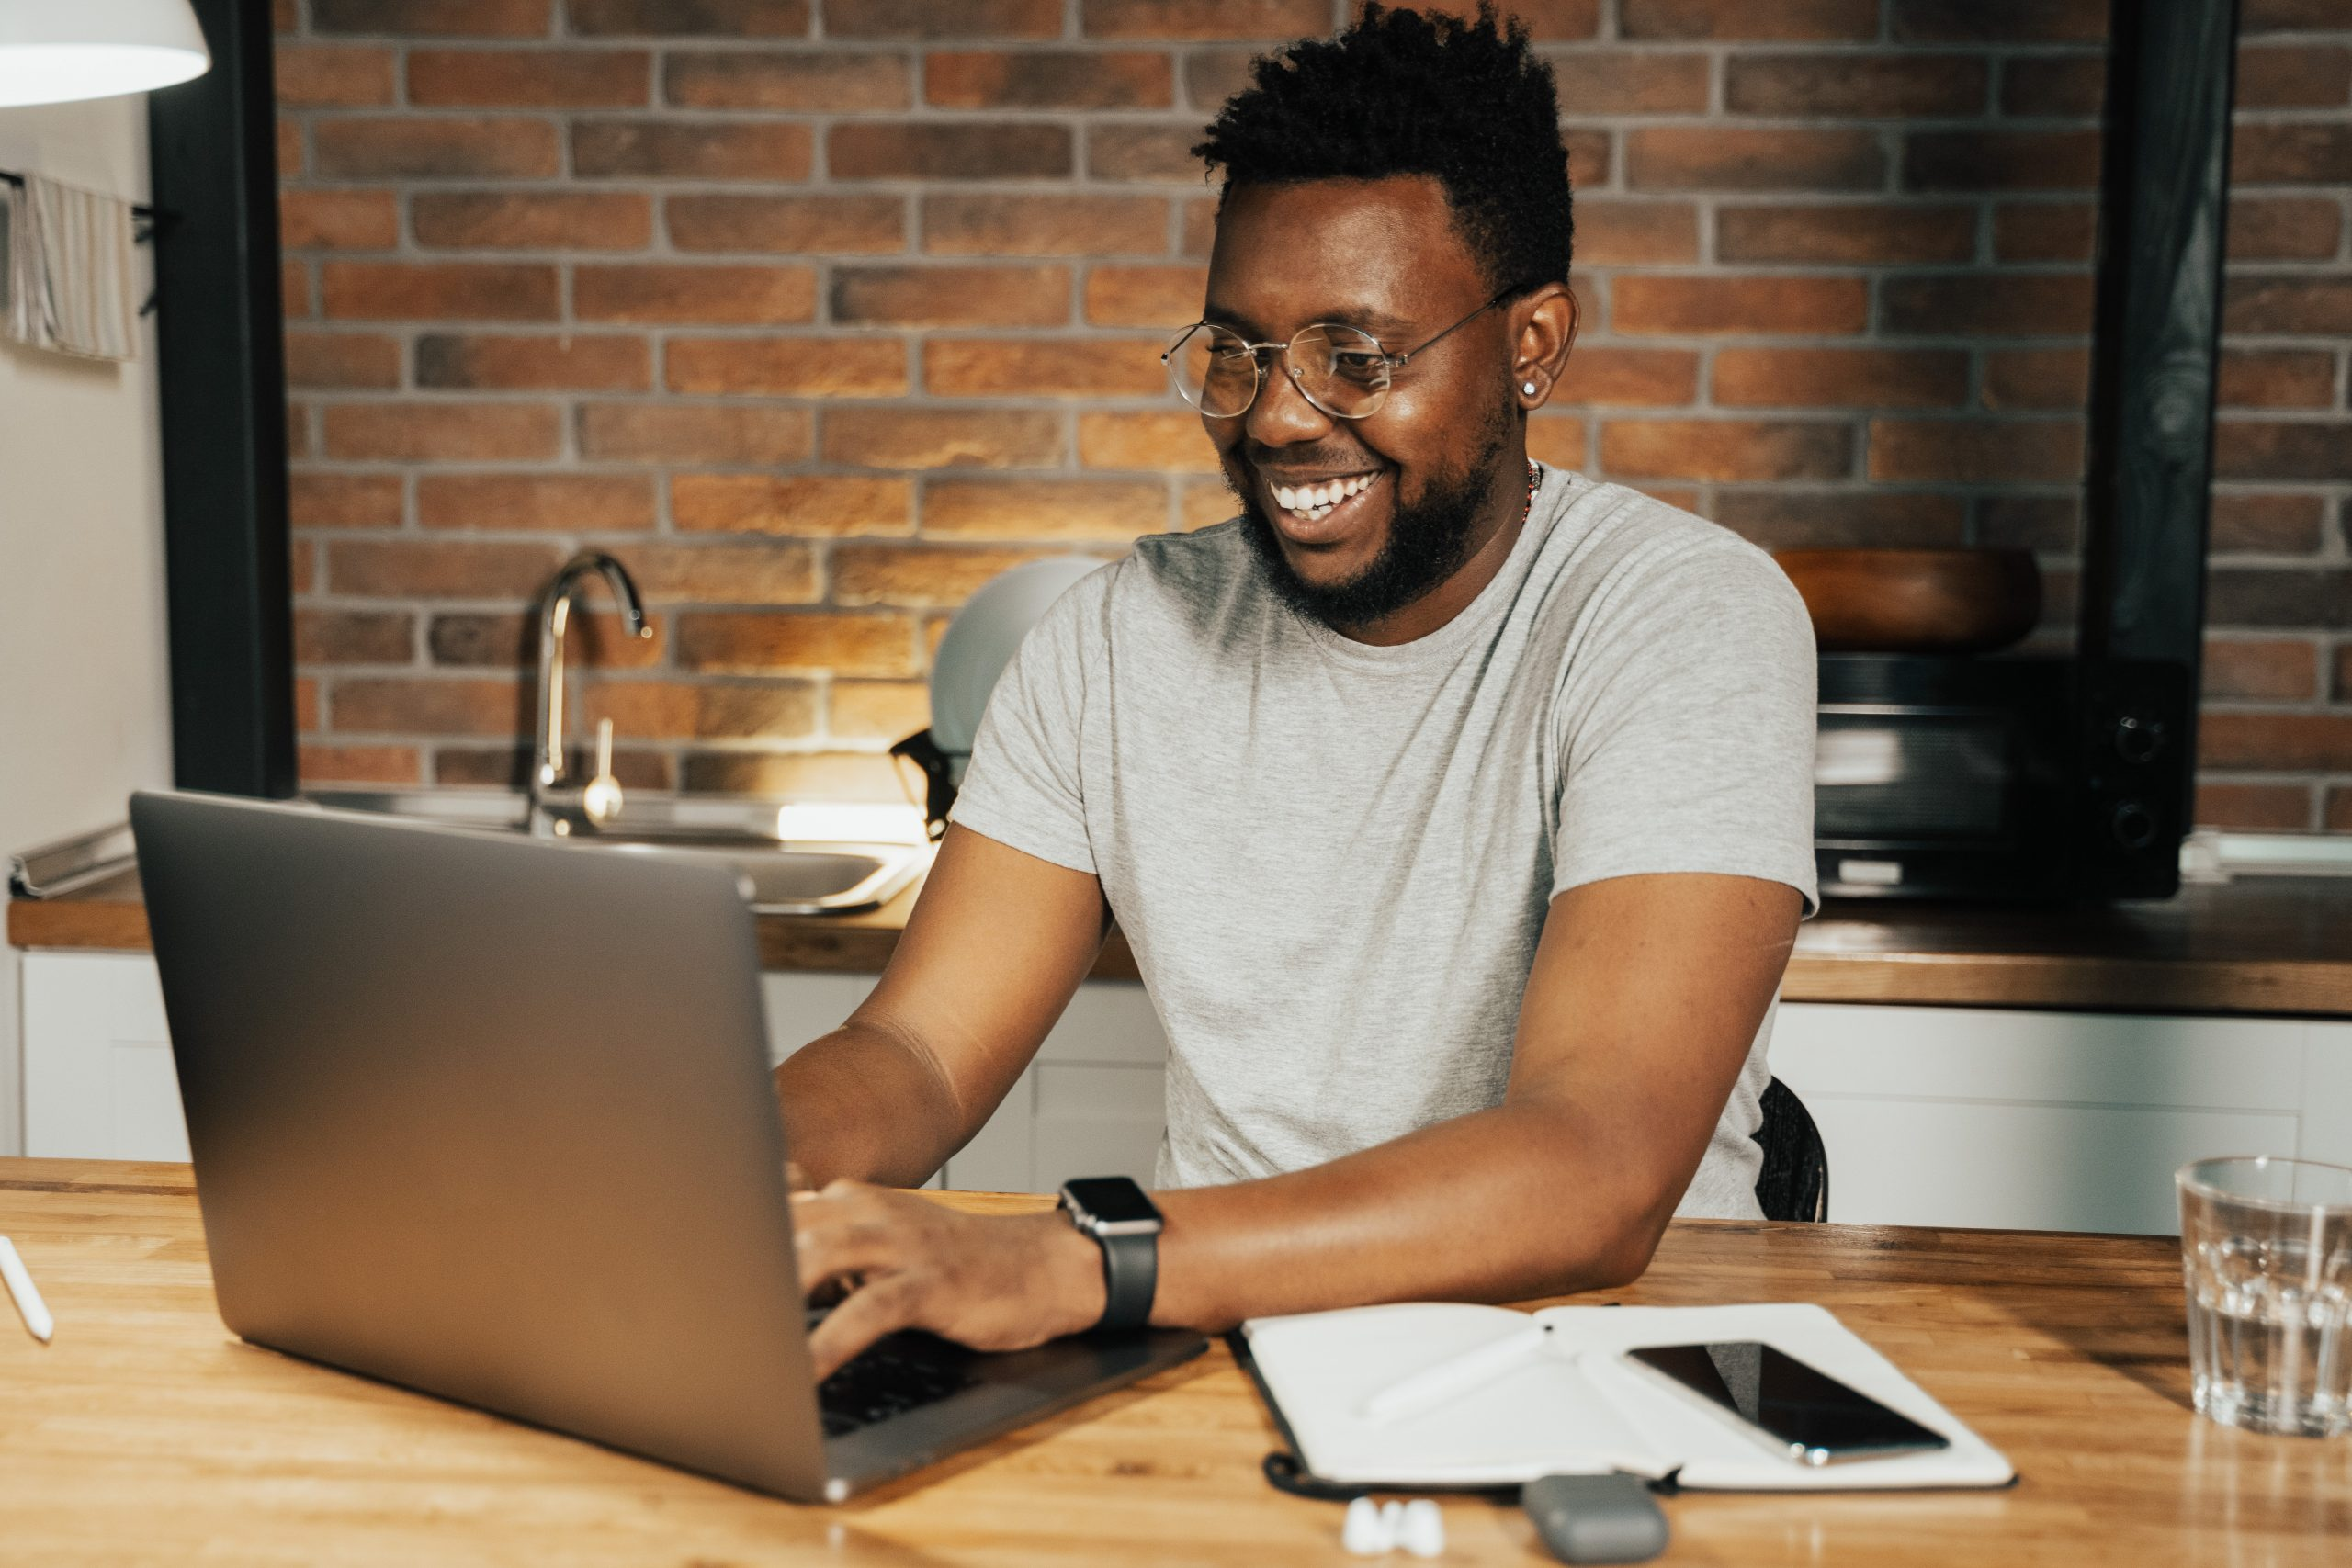 man working on laptop after an afternoon nap